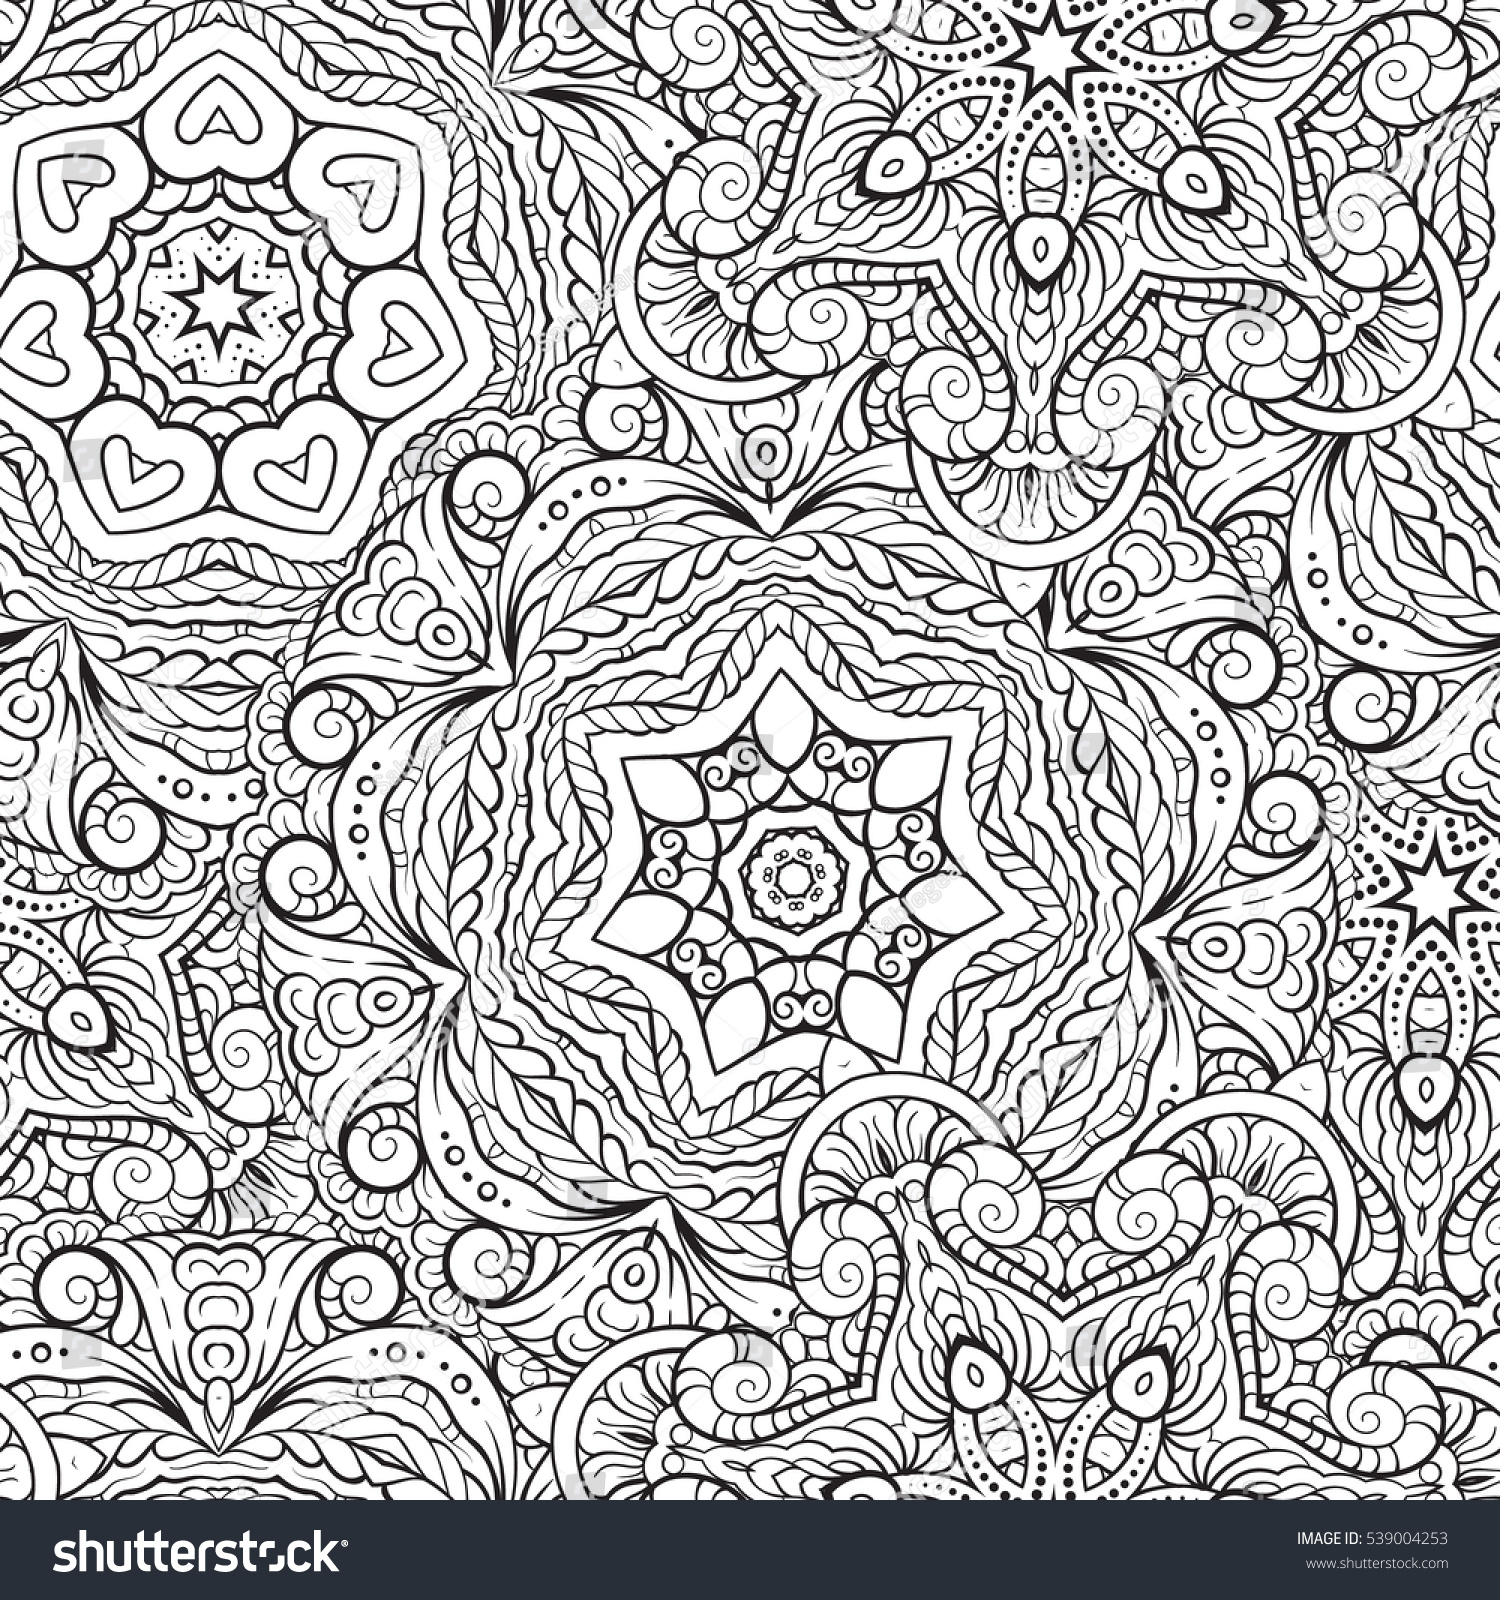 Seamless Abstract Black and White Tribal Pattern Hand Drawn Ethnic Texture Flight of Imagination